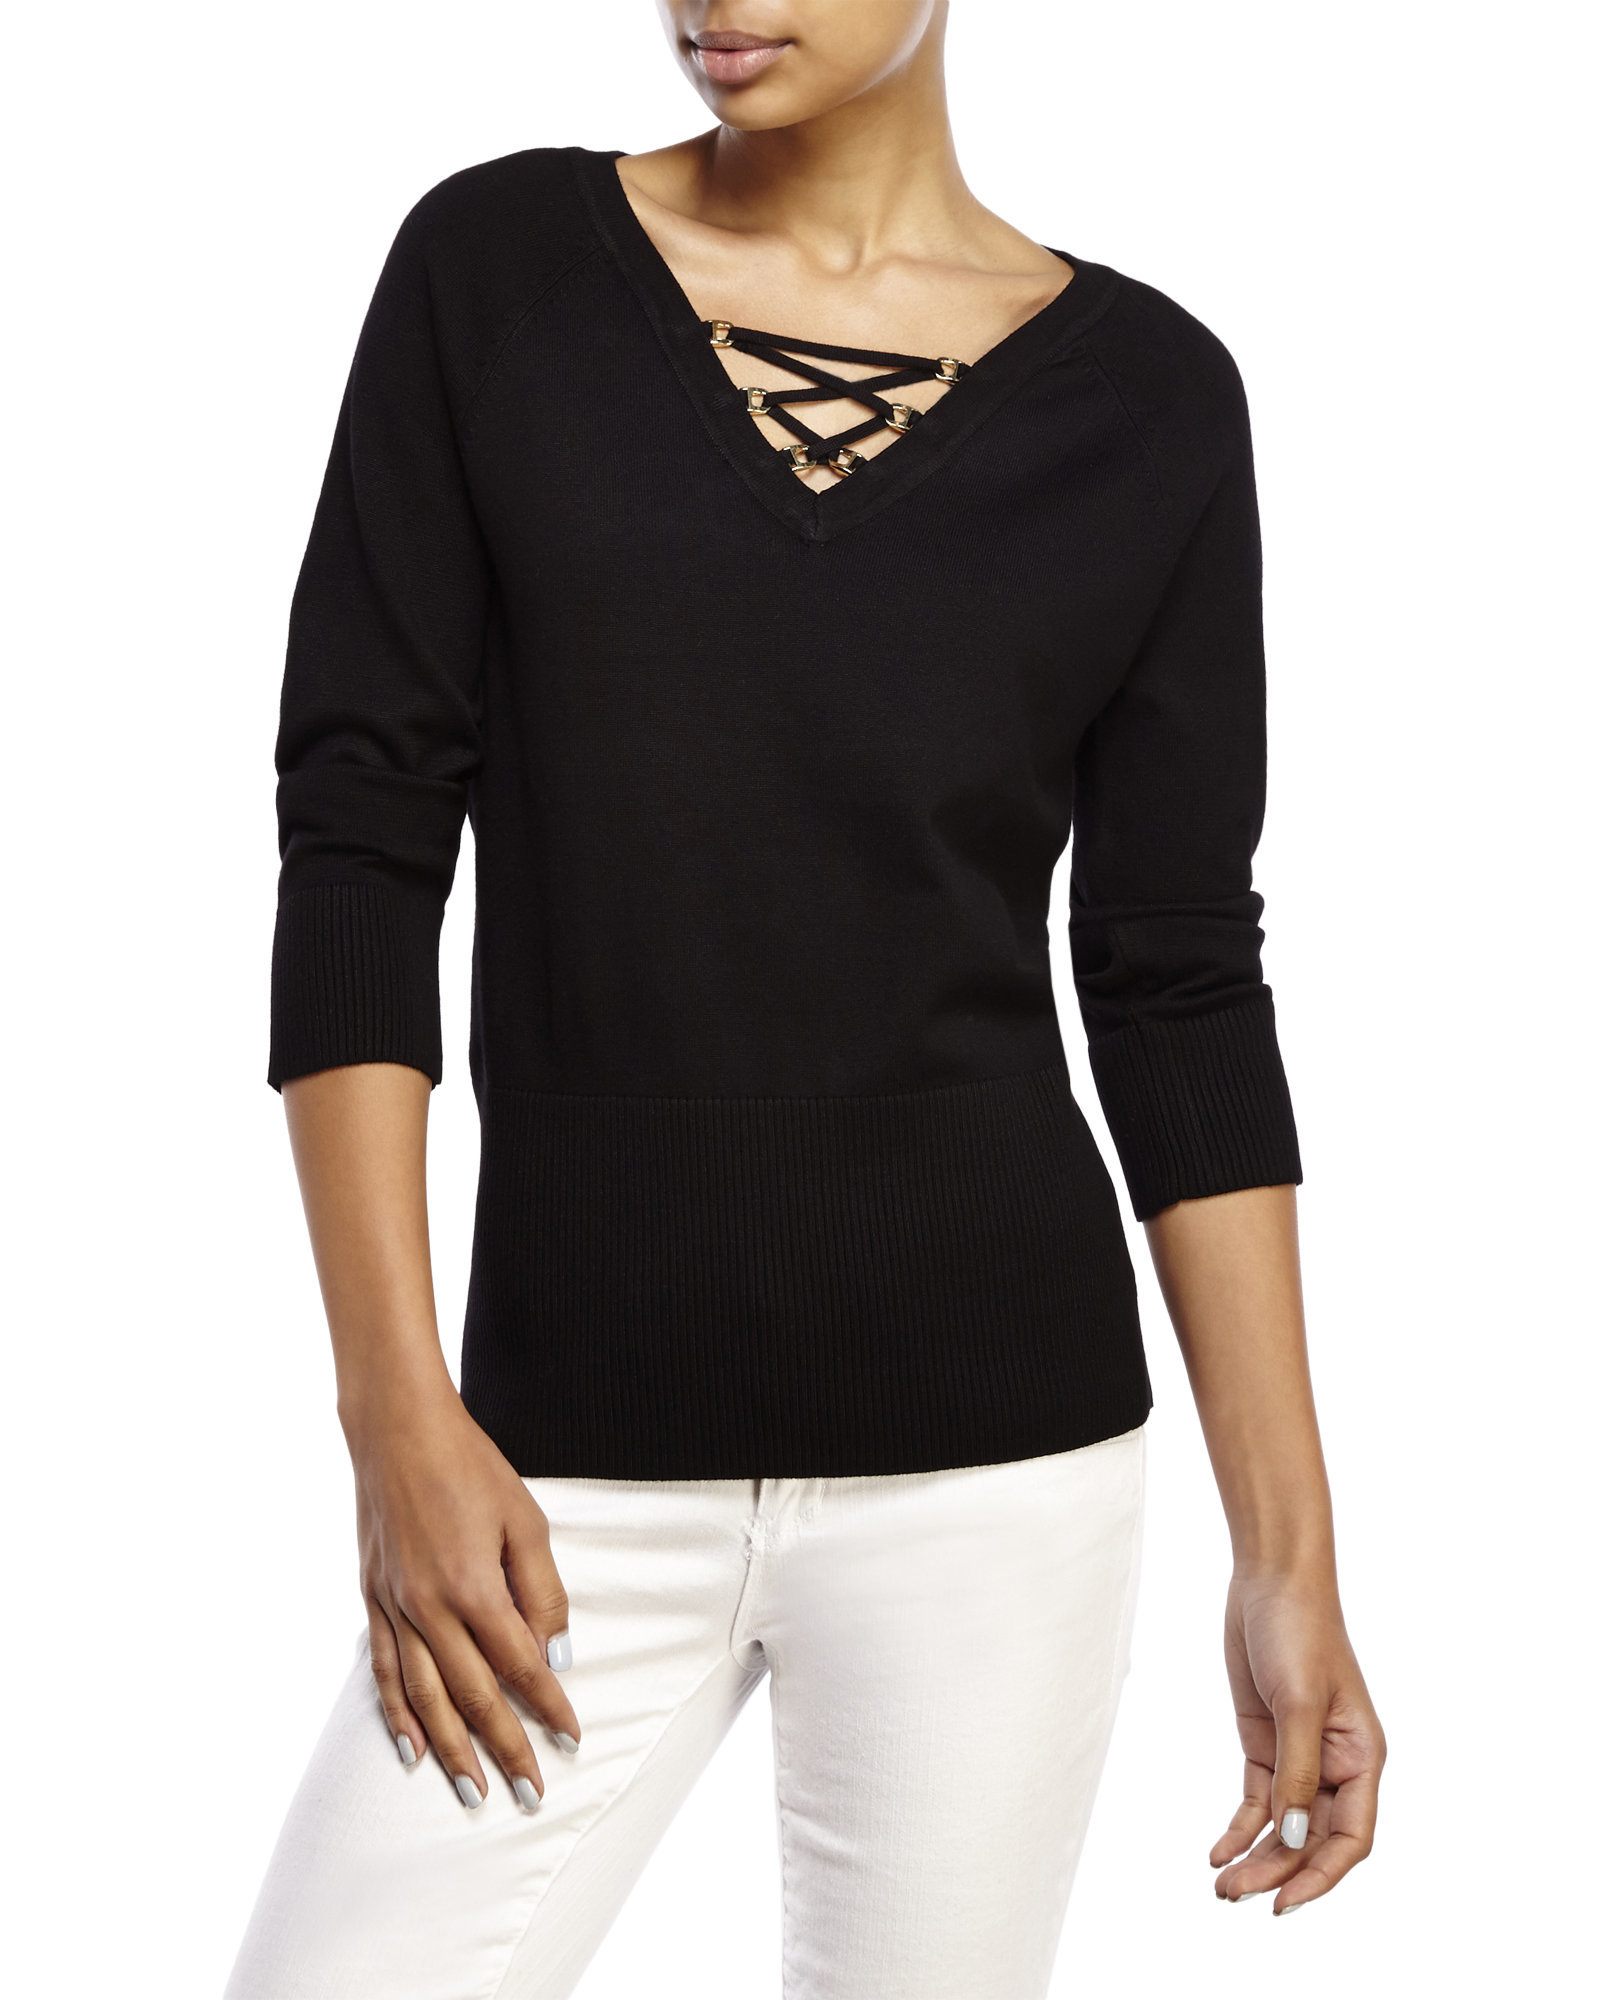 Lyst - Cable & Gauge Lace-Up Sweater in Black